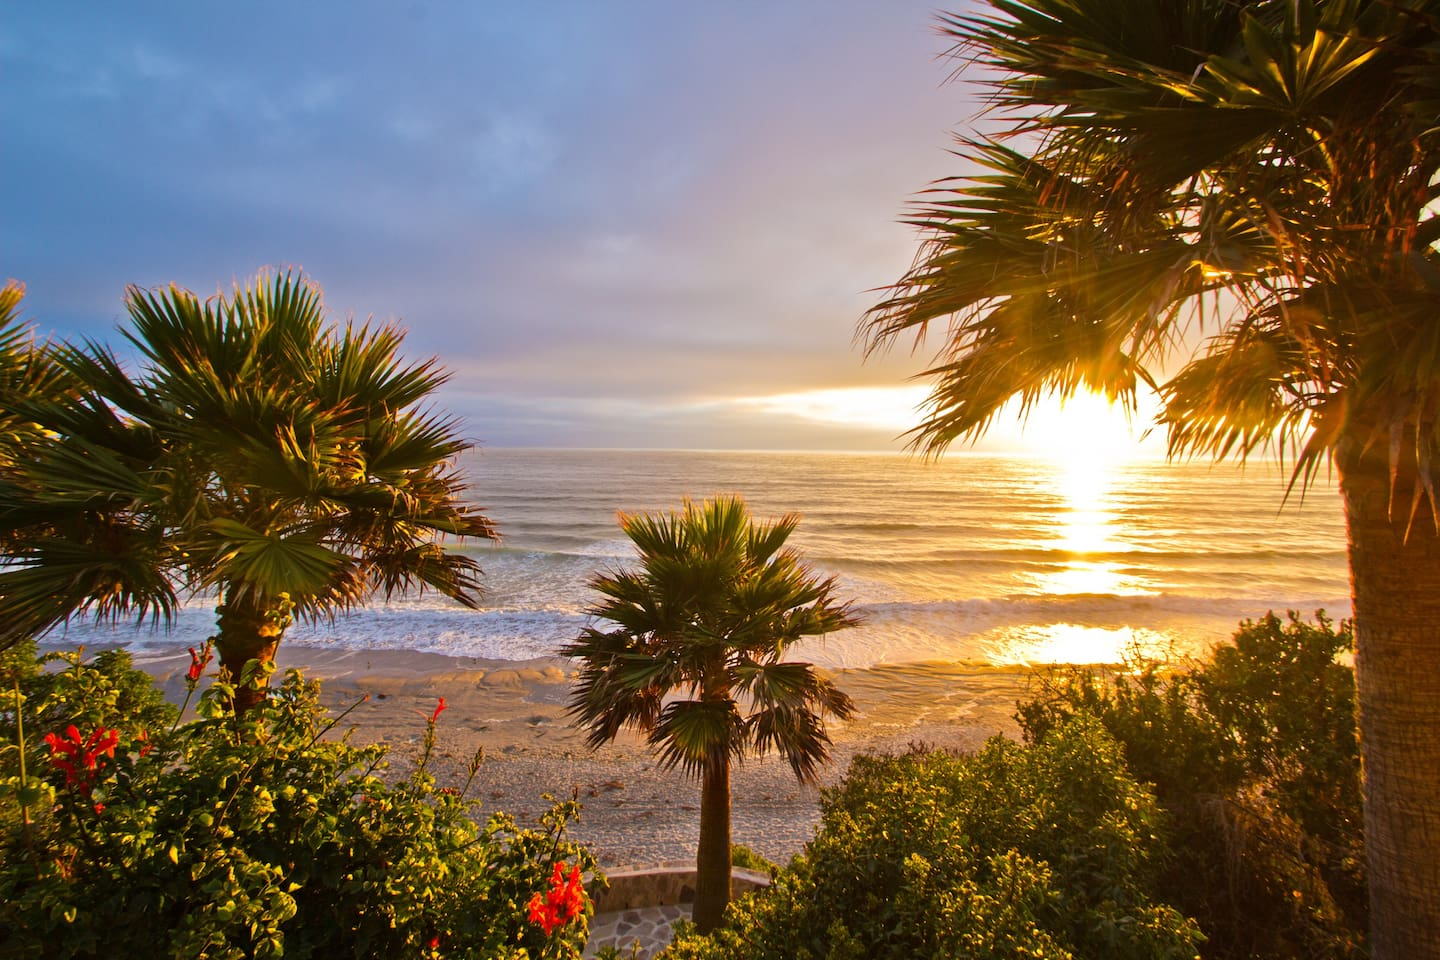 Come and enjoy our spectacular sunsets on our stunning, sandy beach just one hour south of San Diego.